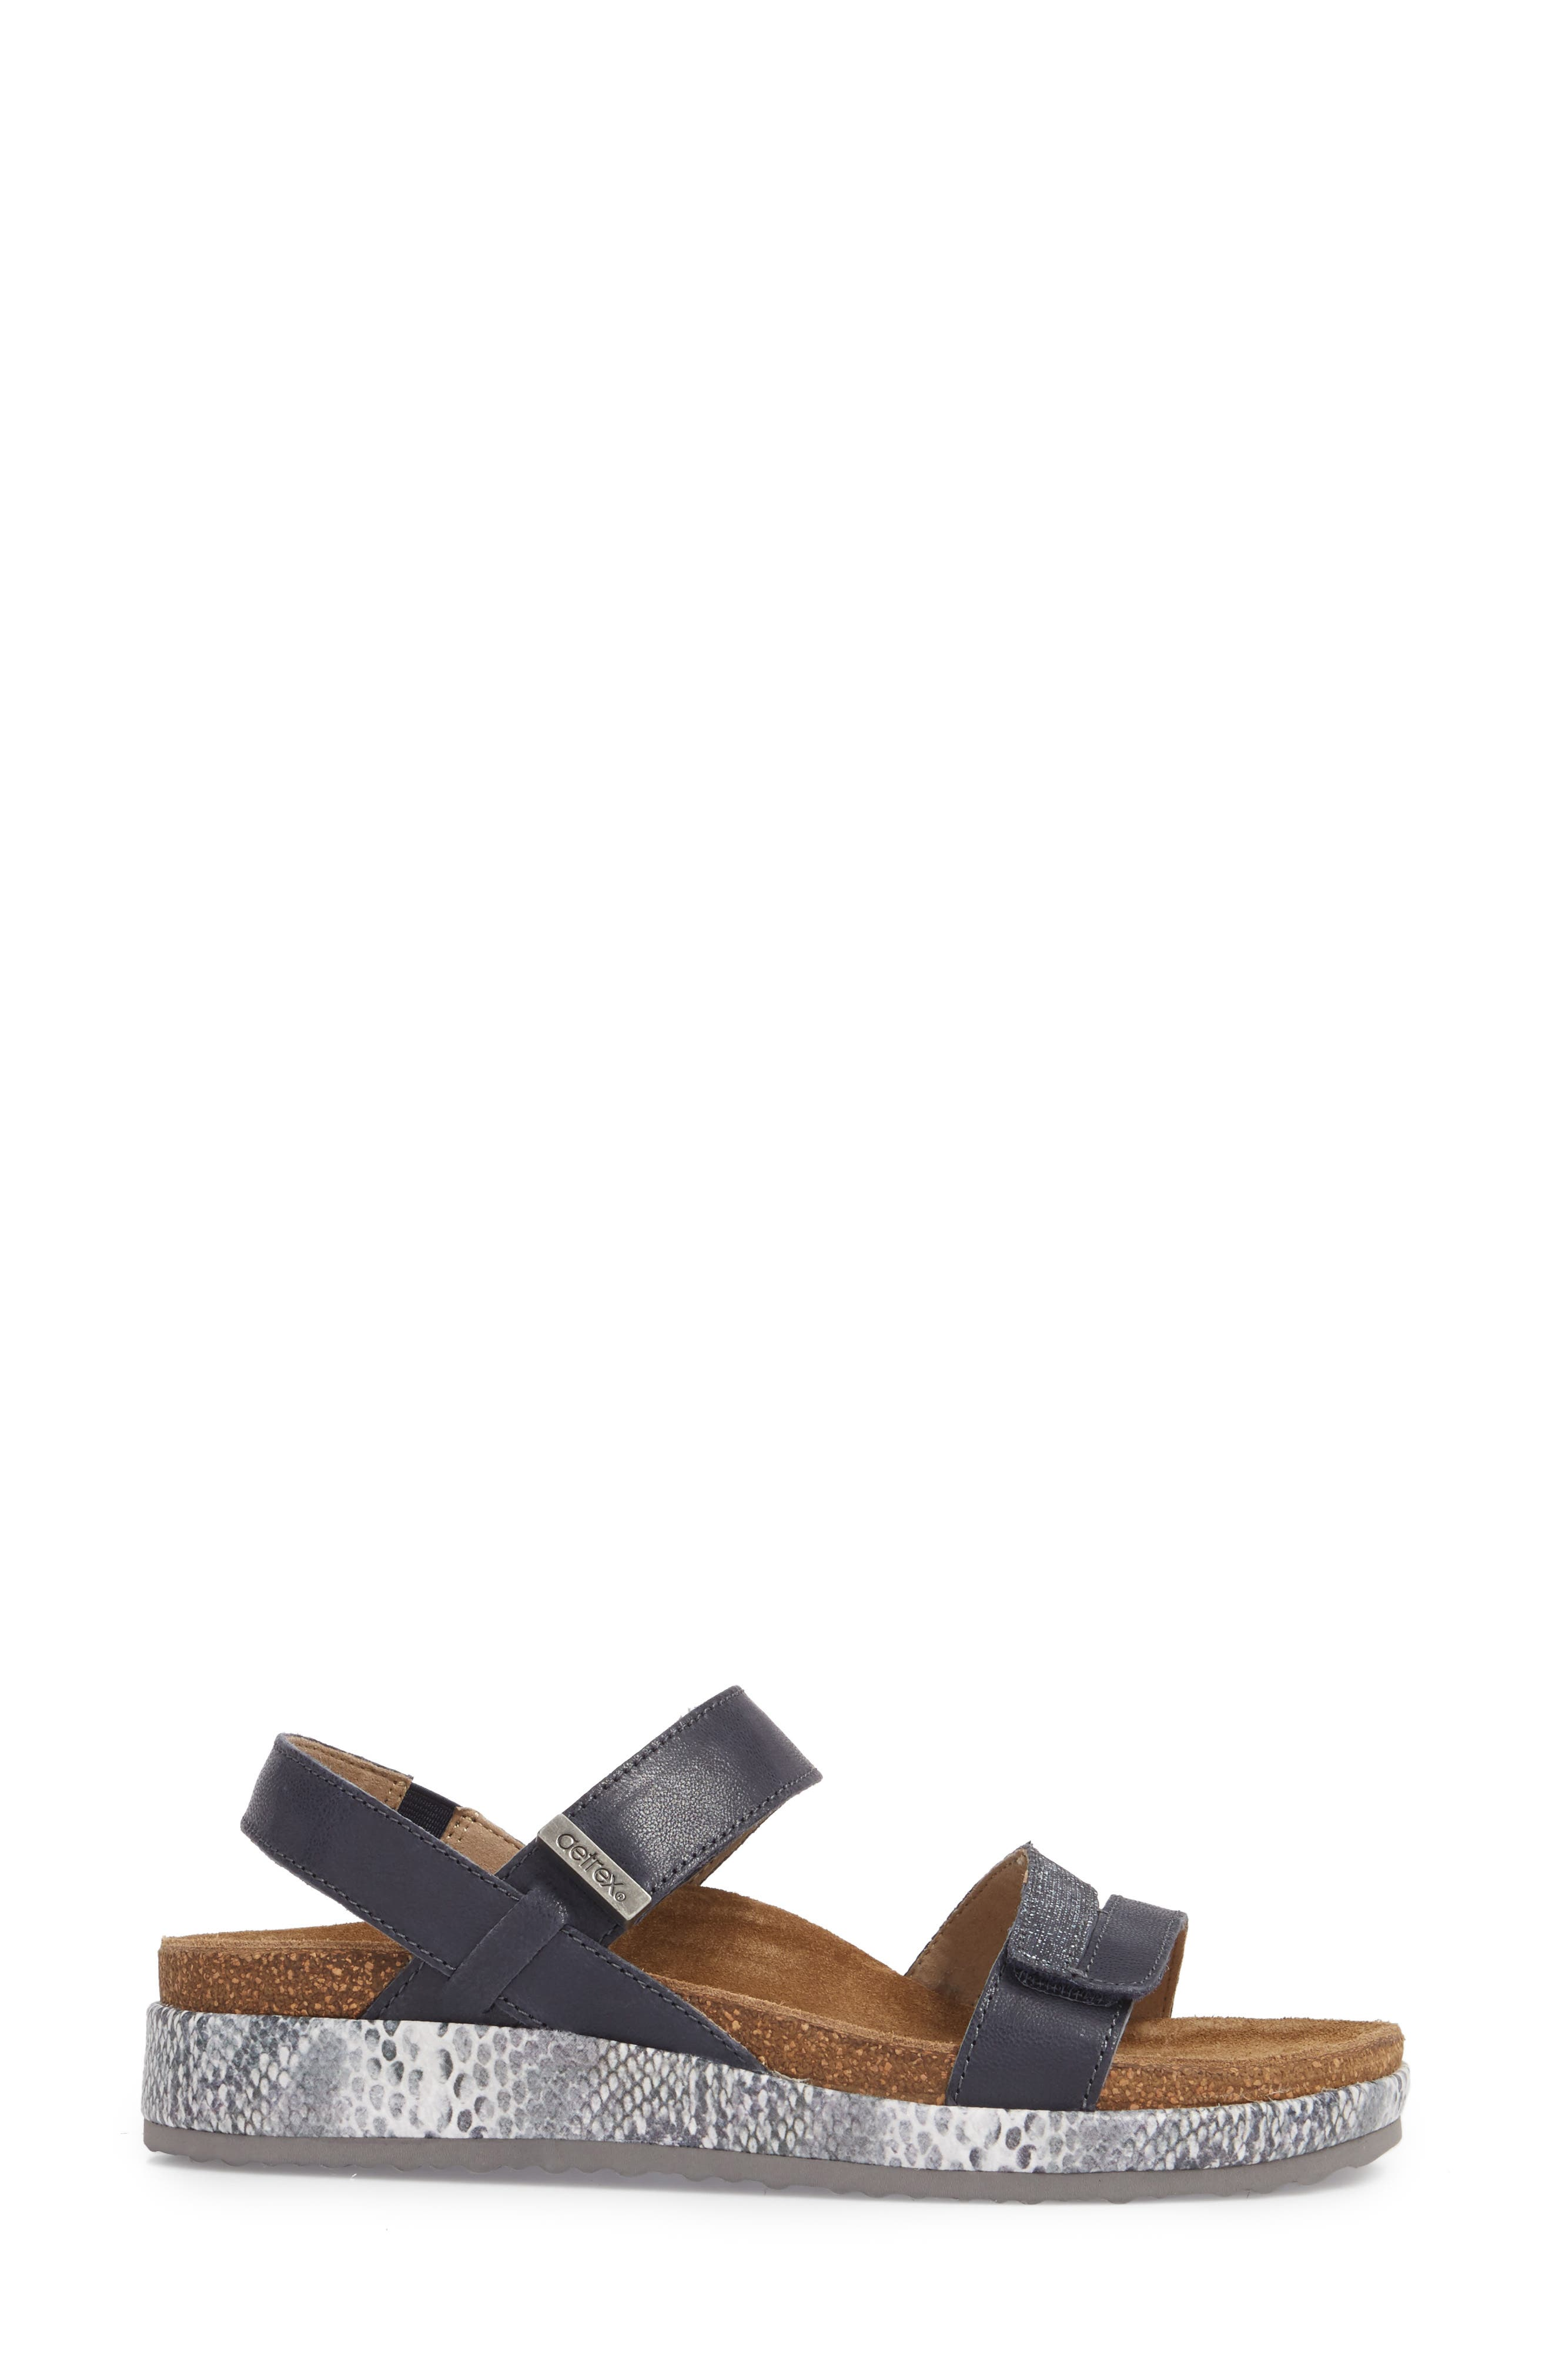 Bethany Sandal,                             Alternate thumbnail 3, color,                             Navy Multi Leather